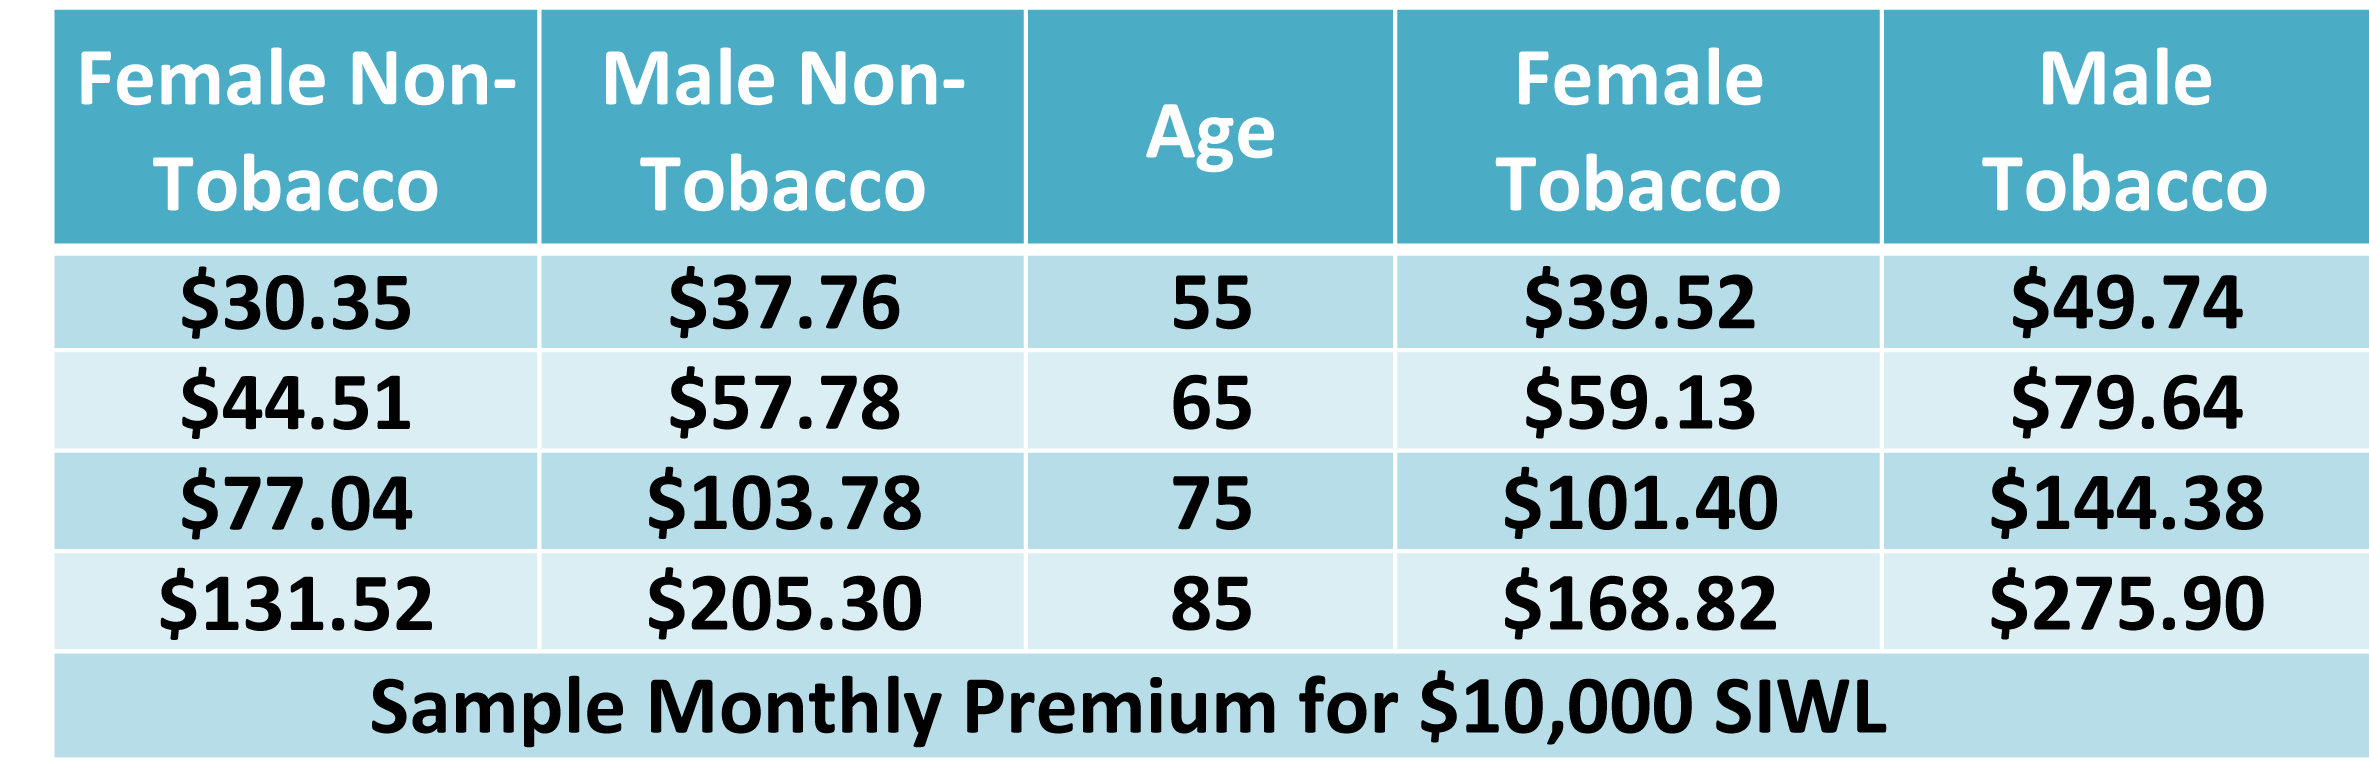 PRCUA Immediate Plan Rates.png